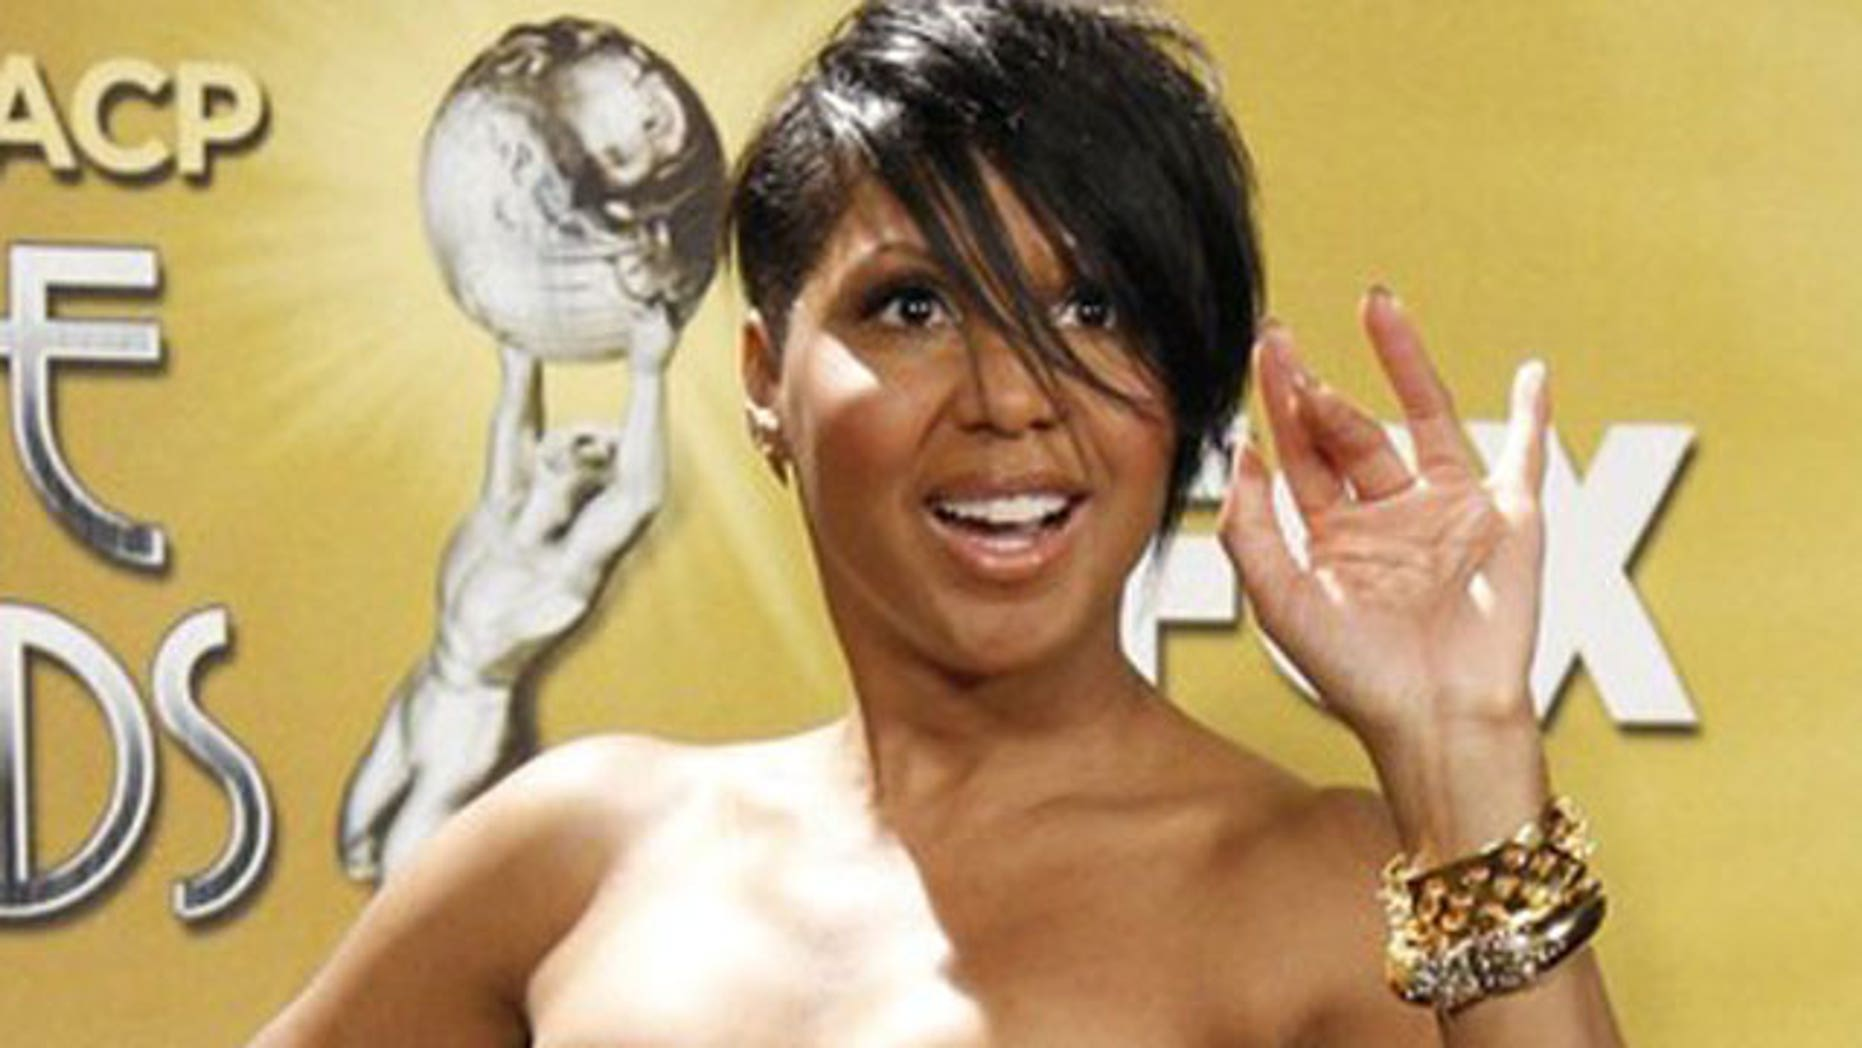 Toni Braxton filed for bankruptcy twice.